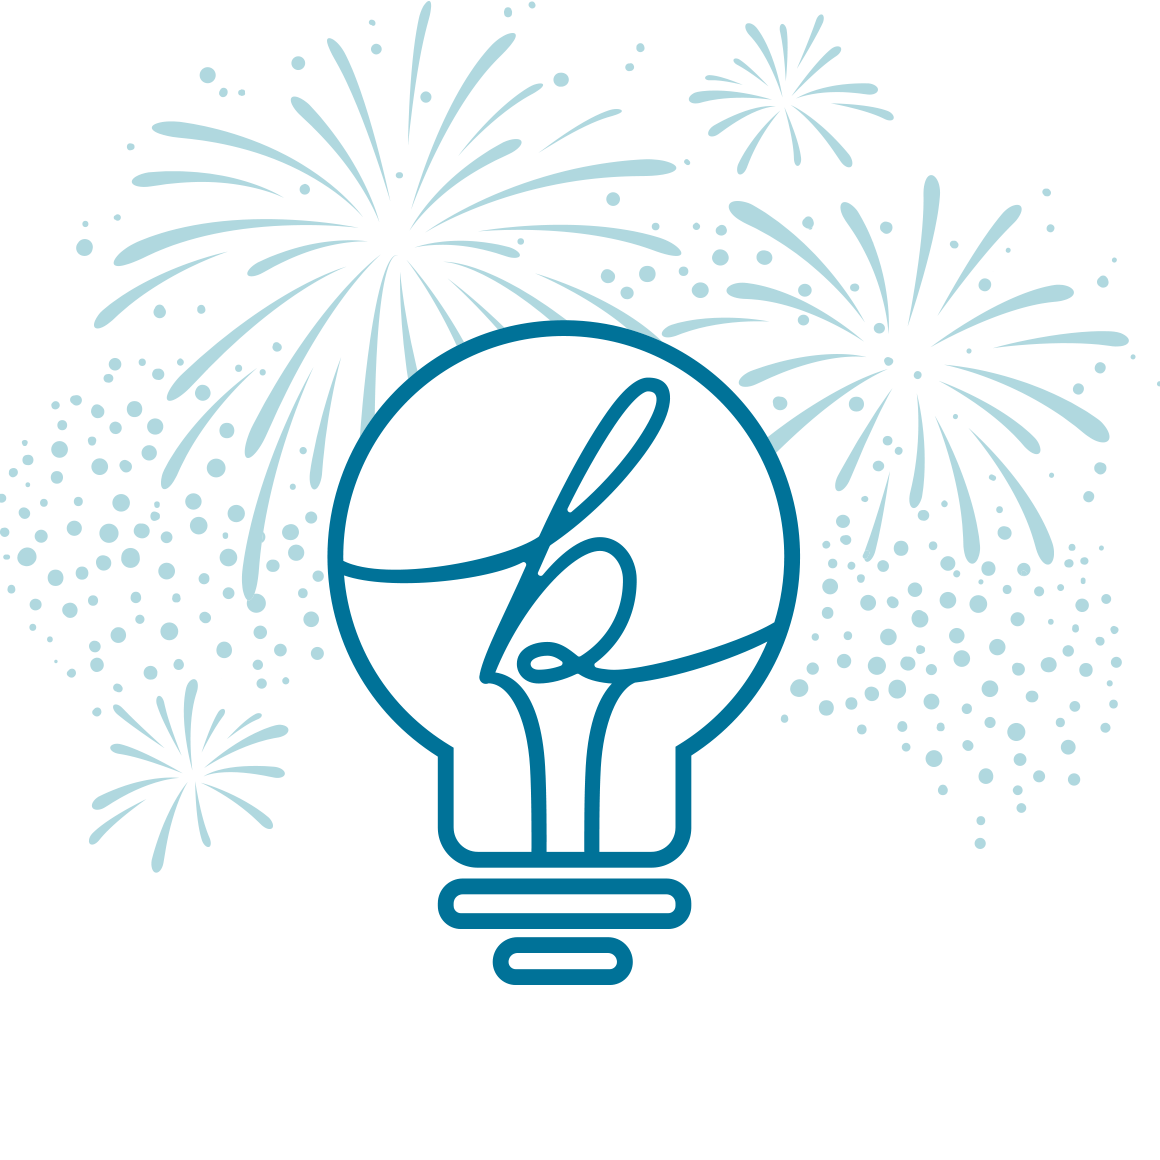 Idea Exchange logo with fireworks